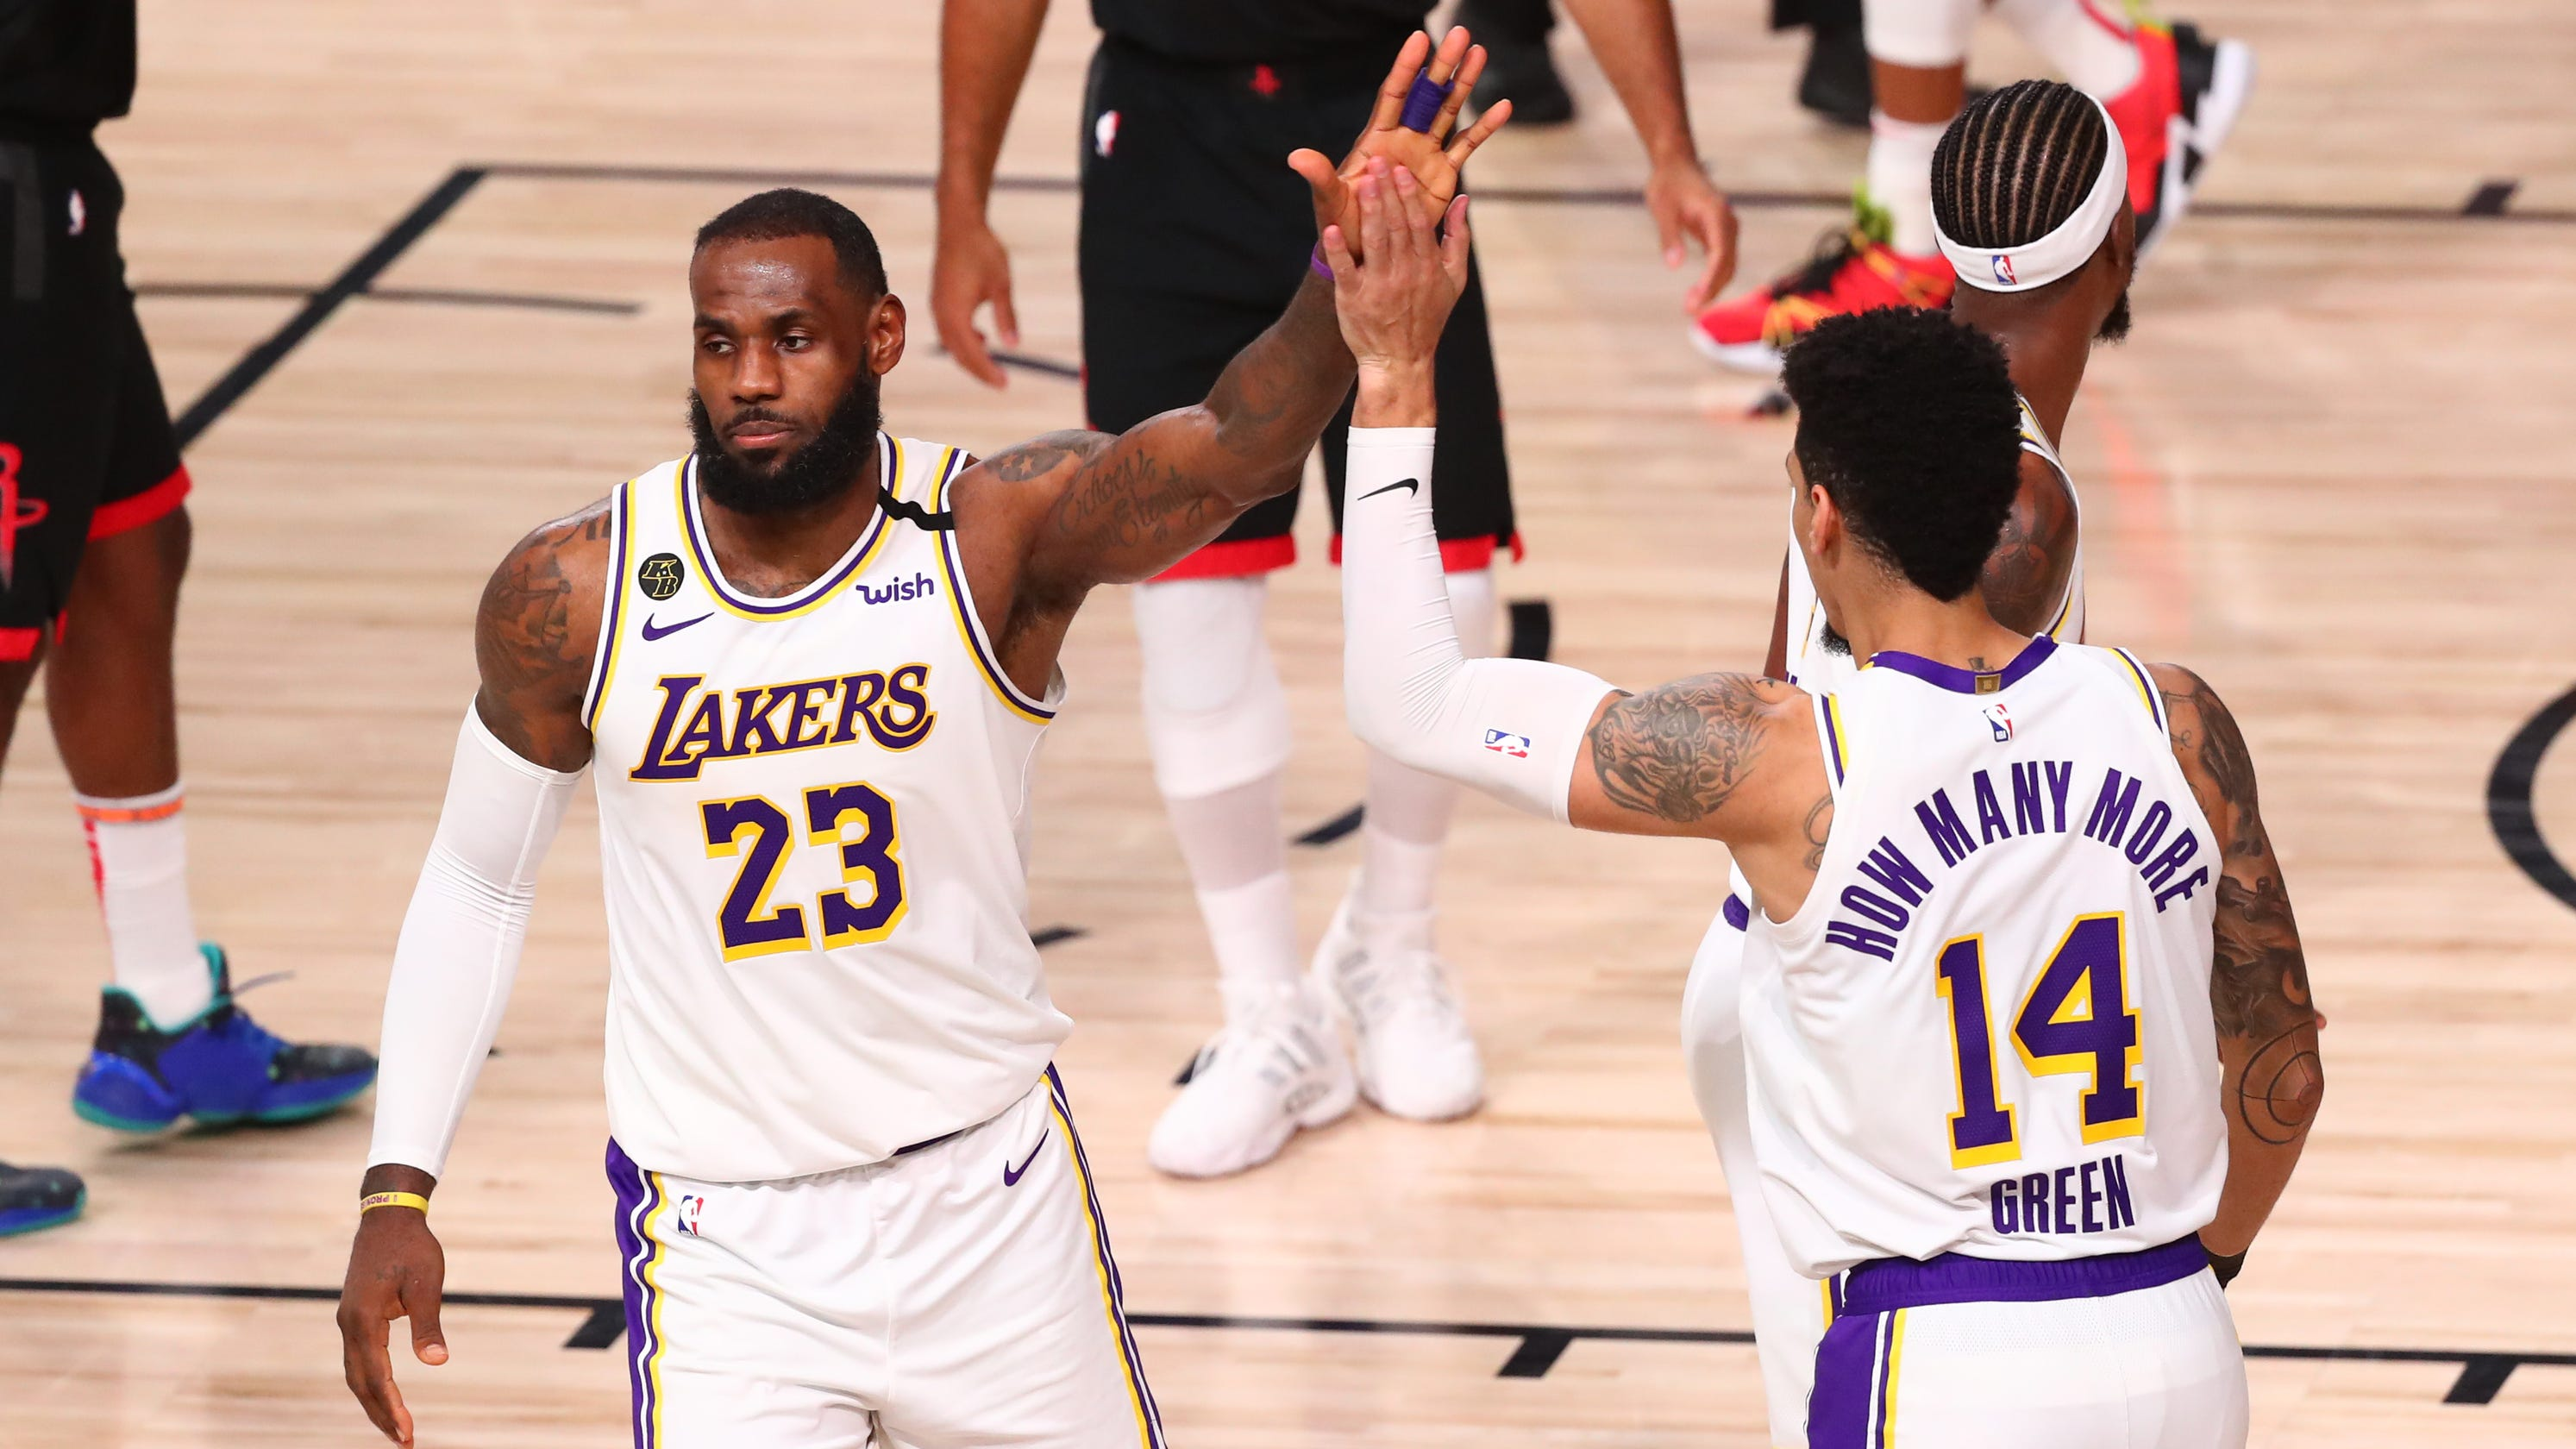 Lakers finish off Rockets to reach Western Conference finals